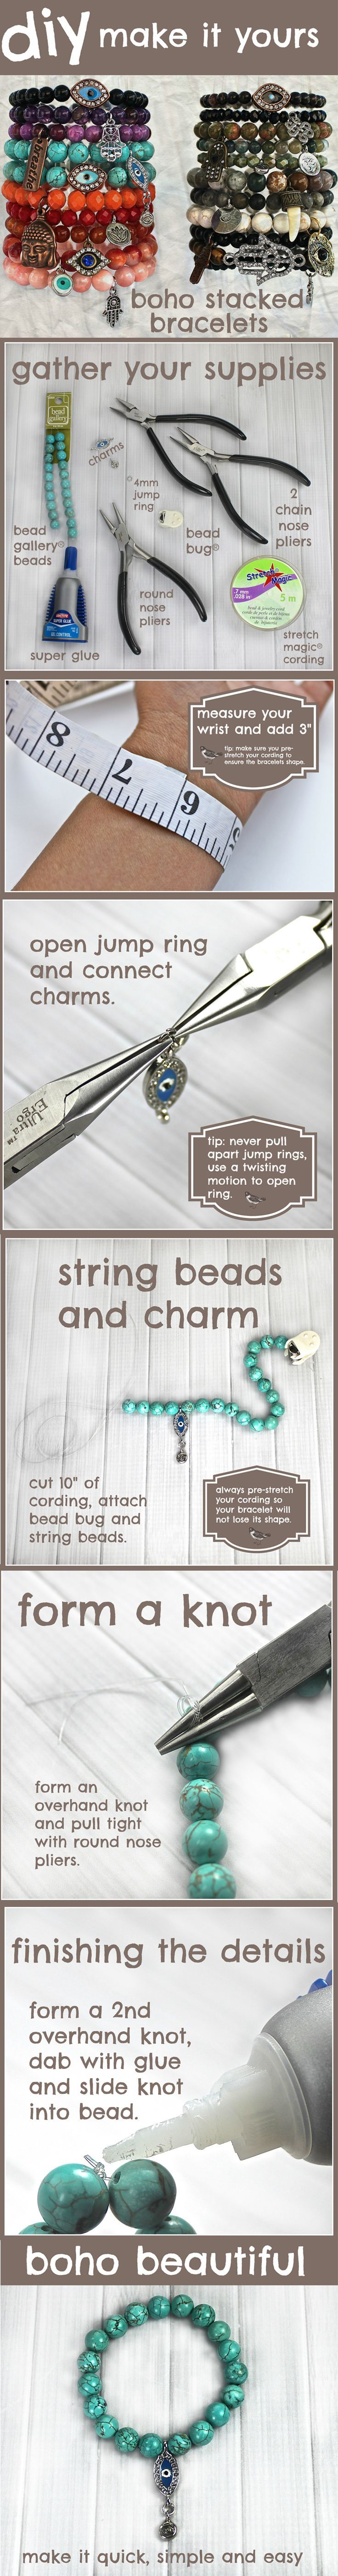 Learn to make professional-quality stacking bracelets with semi-precious turquoise stones, fun charms that are easy to personalize and stretch cord!